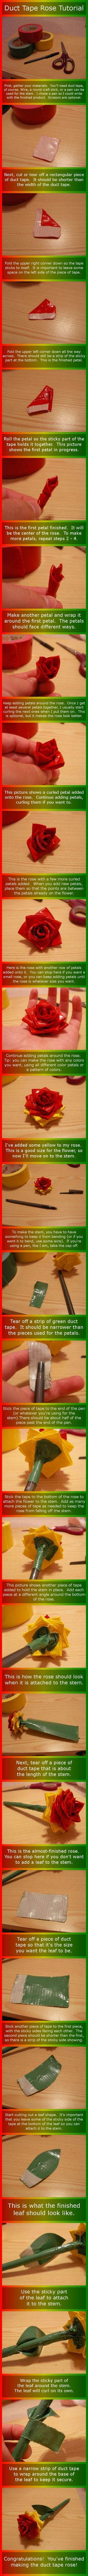 duct tape rose tutorial from annelicyambl.deviantart.com: